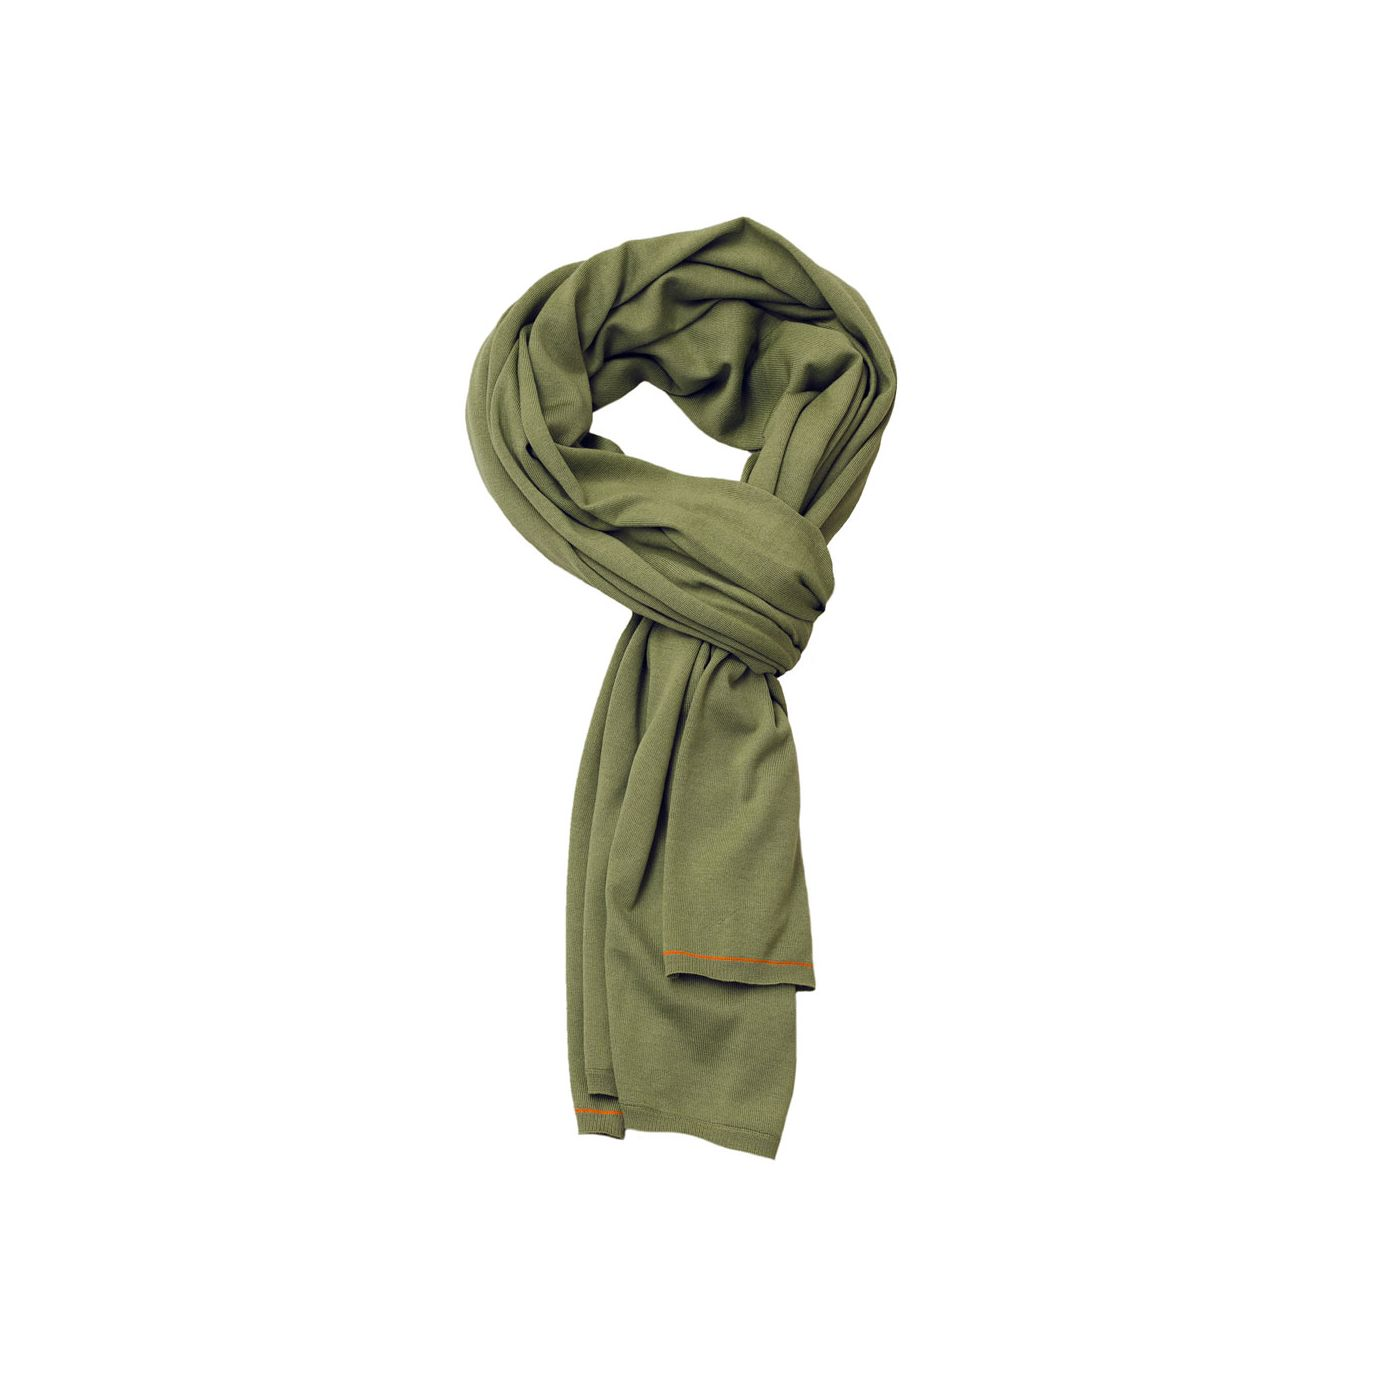 Scarf for men made of Merino wool in Green